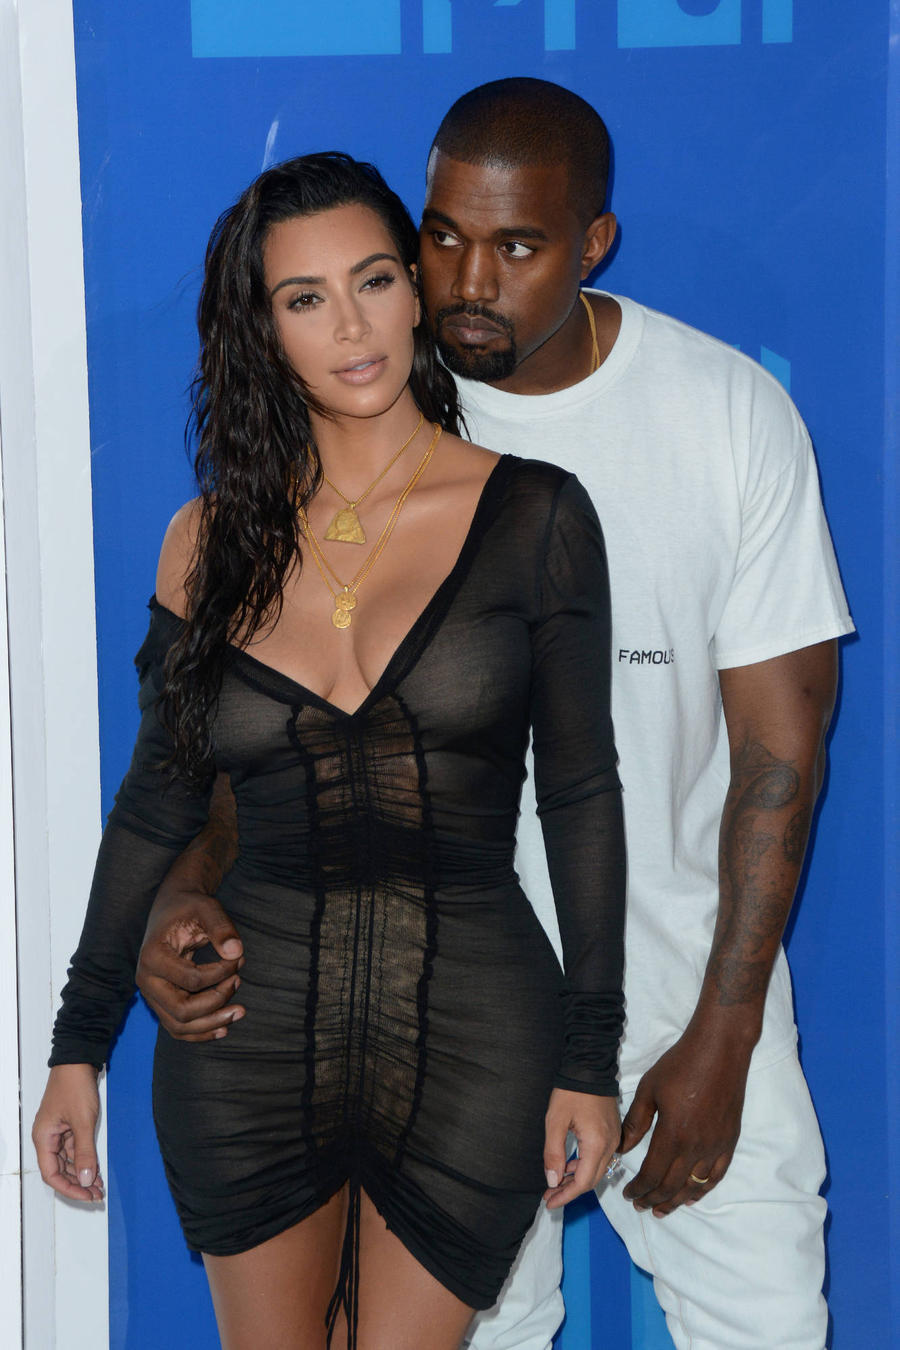 Kanye West Reschedules Tour Dates After Kim Kardashian's Robbery Ordeal